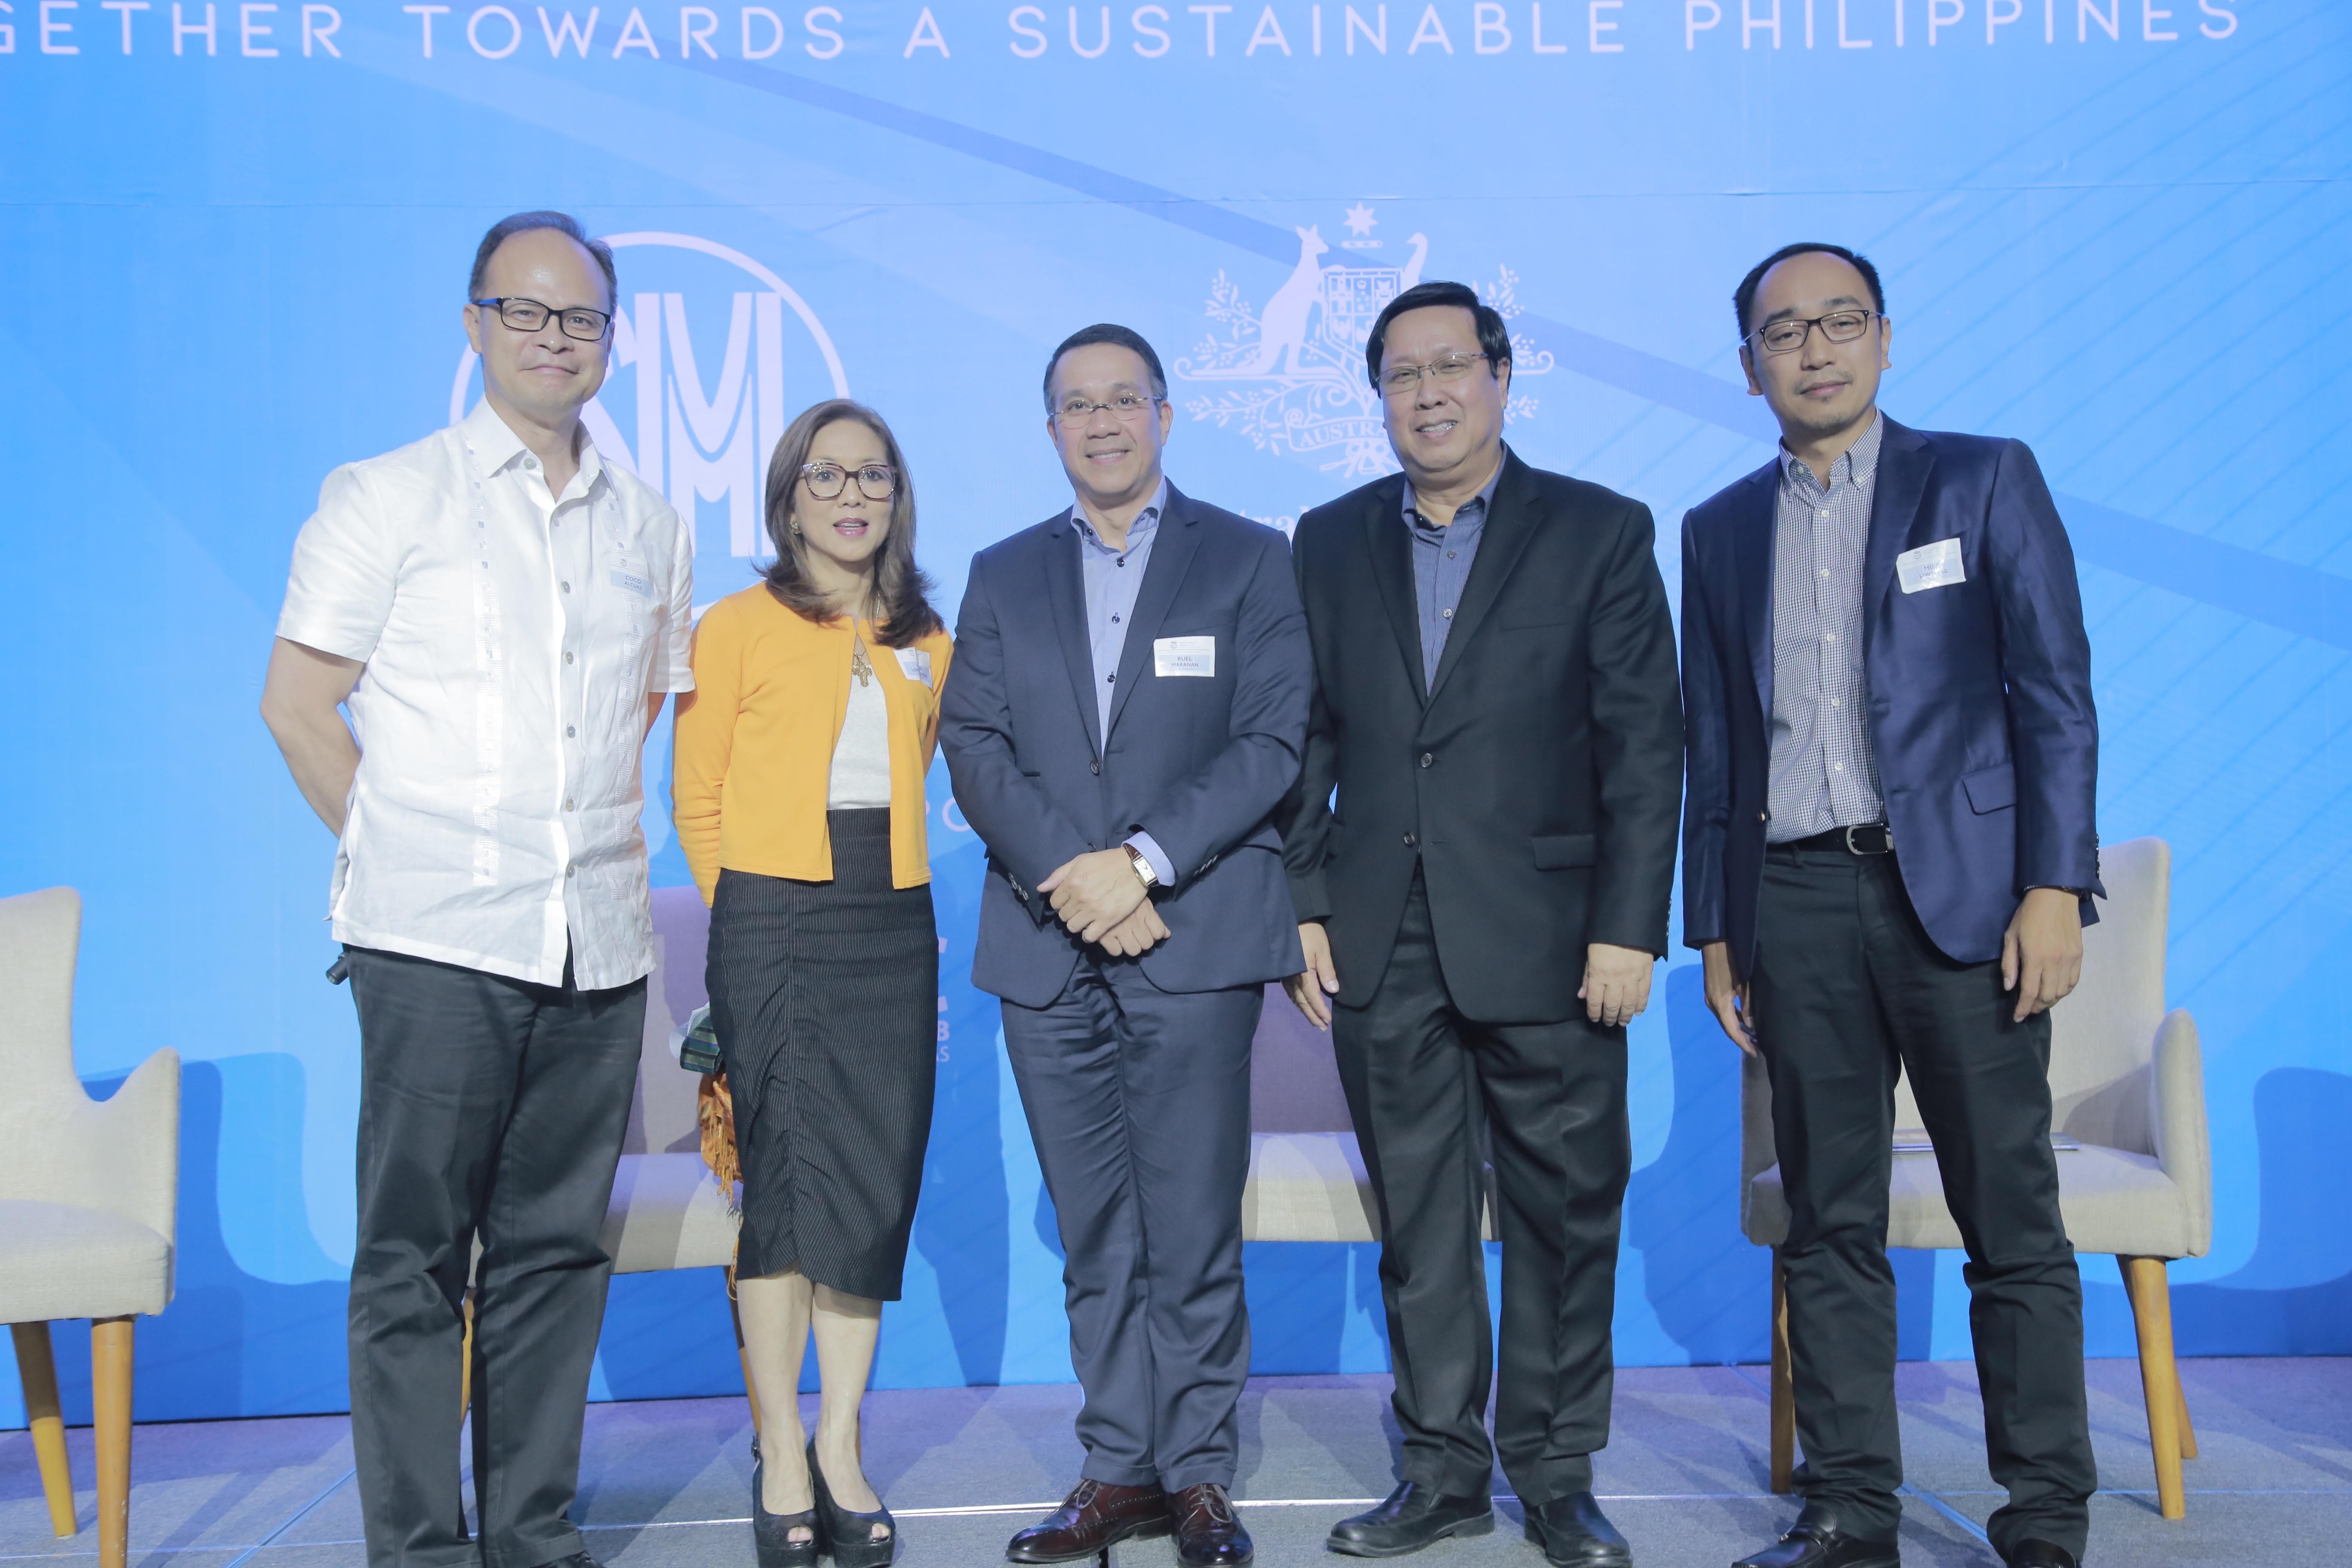 LGFI president Cedie Lopez Vargas with her fellow GRI summit panelists, Ruel Maranan of Ayala Foundation, Ramon Gil Macapagal of SMIC and Mike Liwanag of JG Summit, and moderator Coco Alcuaz